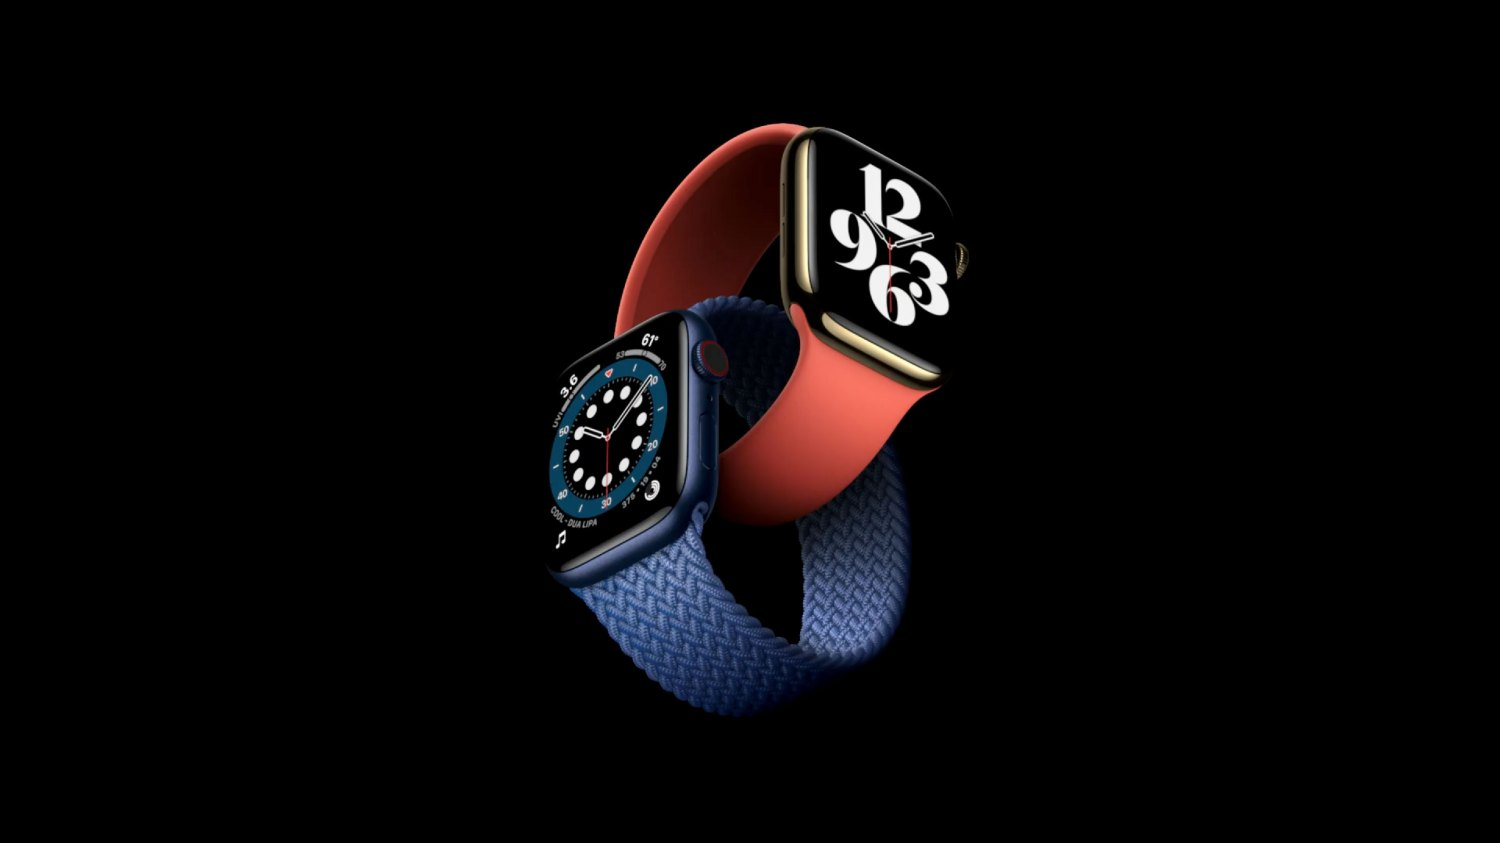 Apple Watch Series 6 ed Apple Watch SE sono ufficiali: prezzi e disponibilità